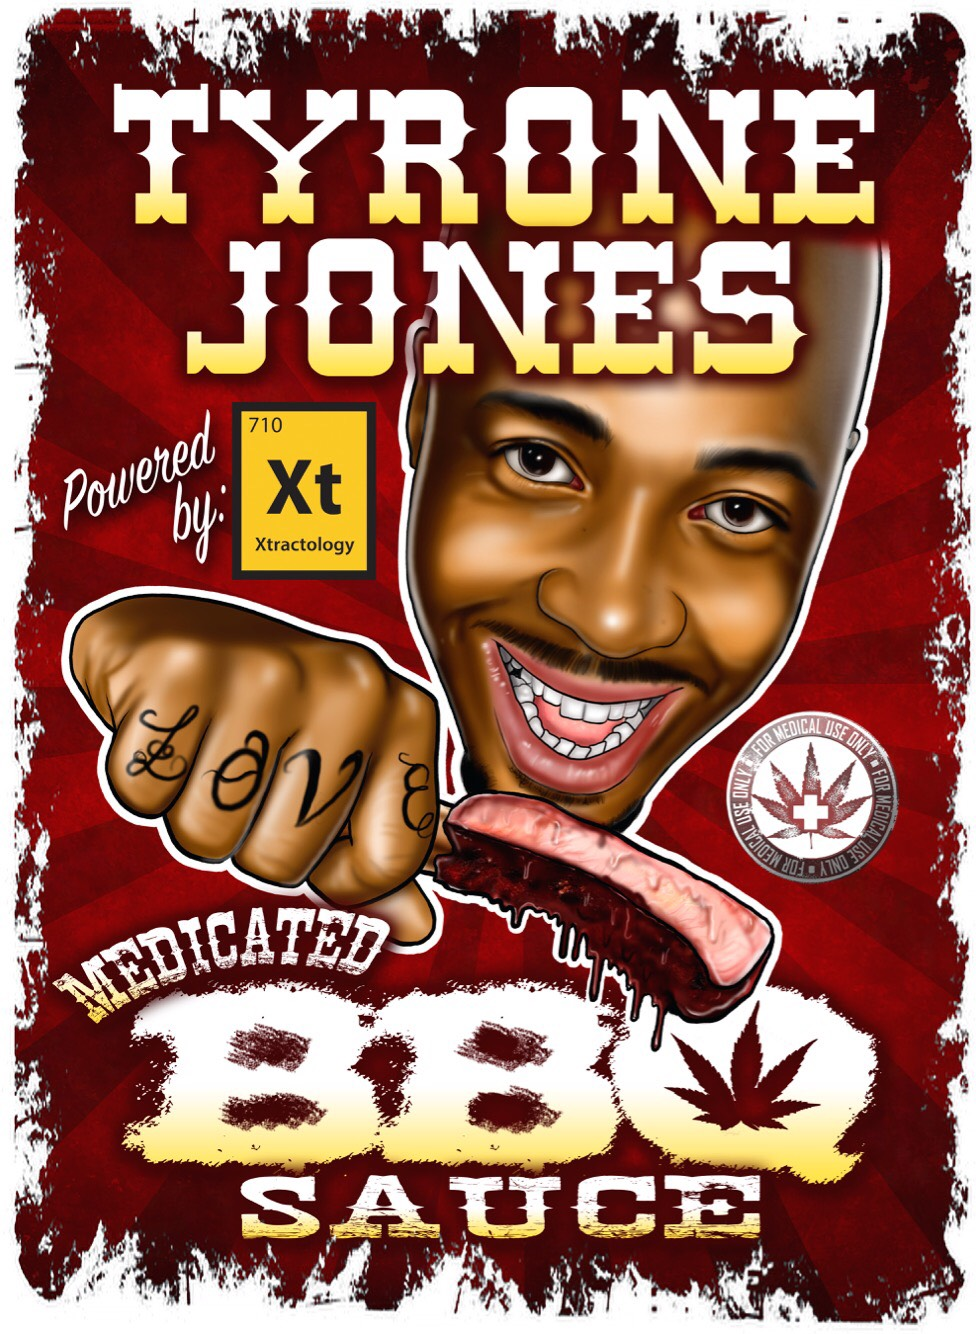 Farm to Table Cannabis ep # 4 w/ Tyrone Jones Medicated BBQ Sauce, Warren Bobrow The Cocktail Whisperer